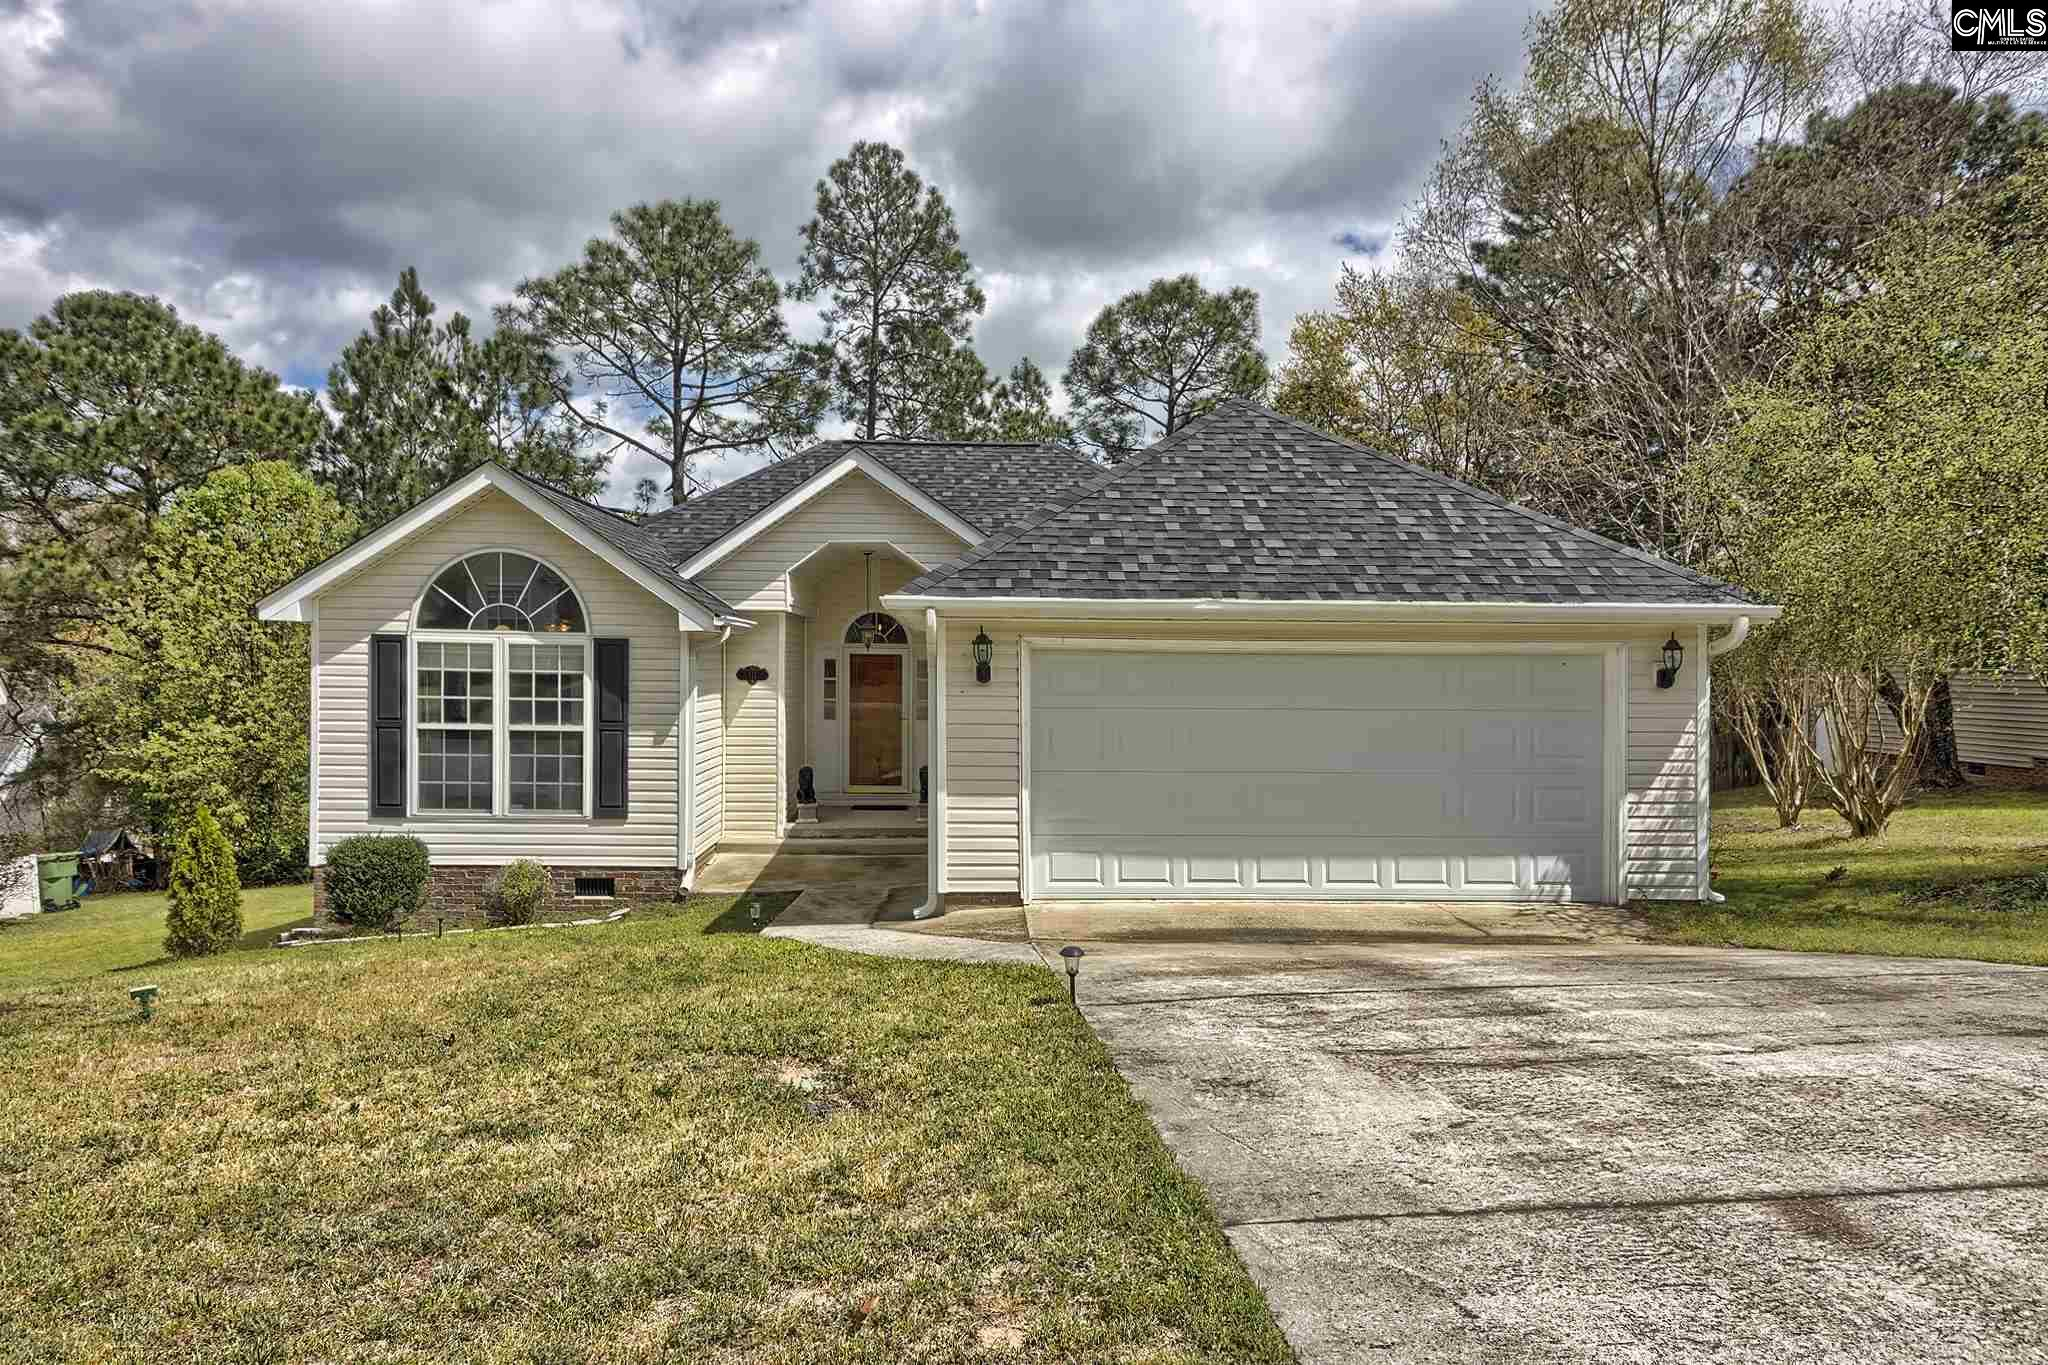 313 Coulter Pine Columbia, SC 29229-9520